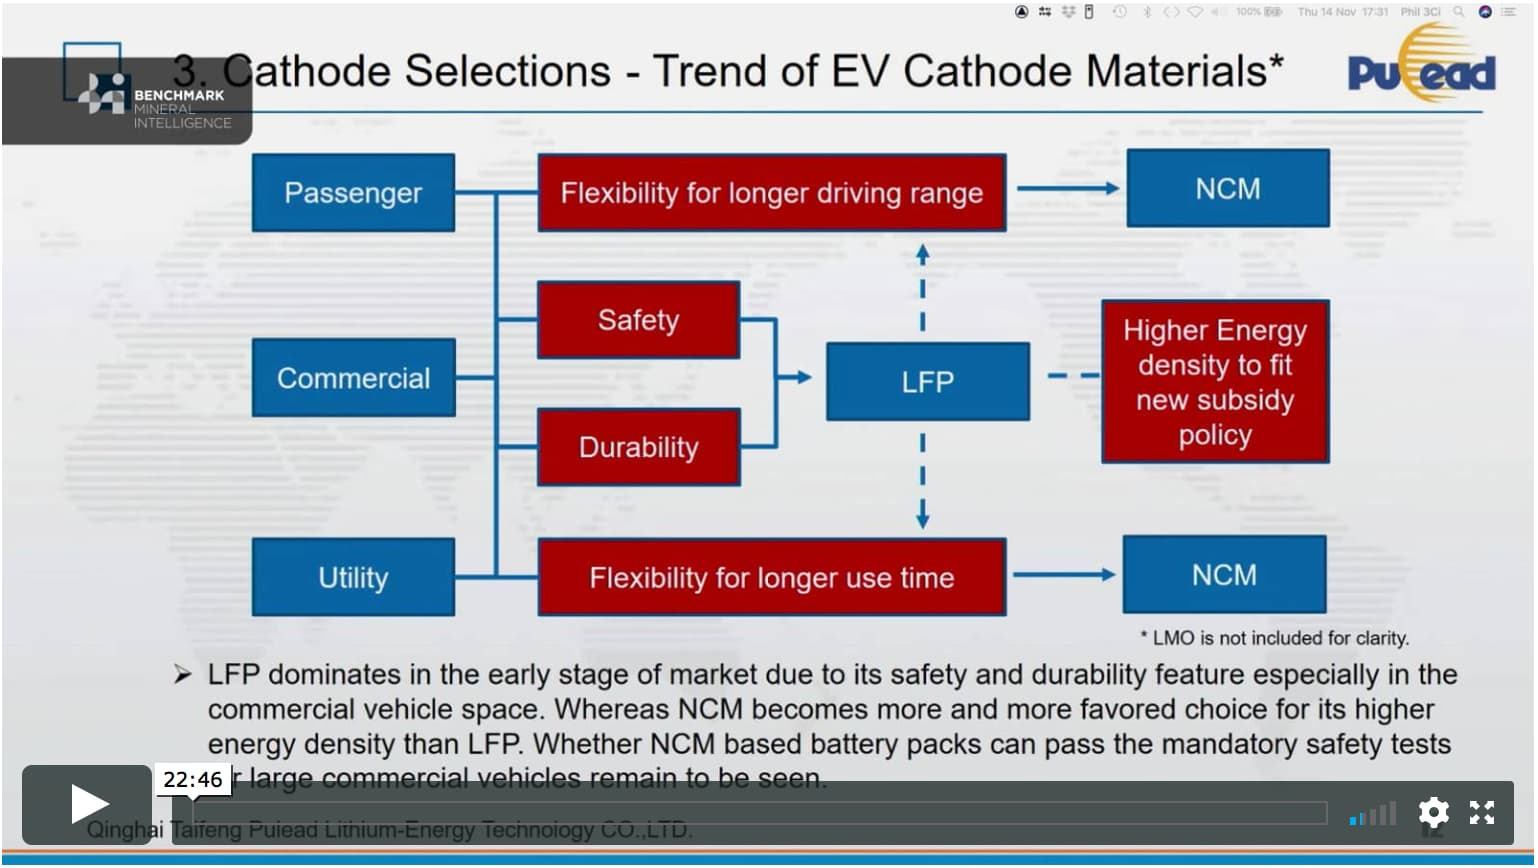 Chinese EV Market and its implications in cathodes